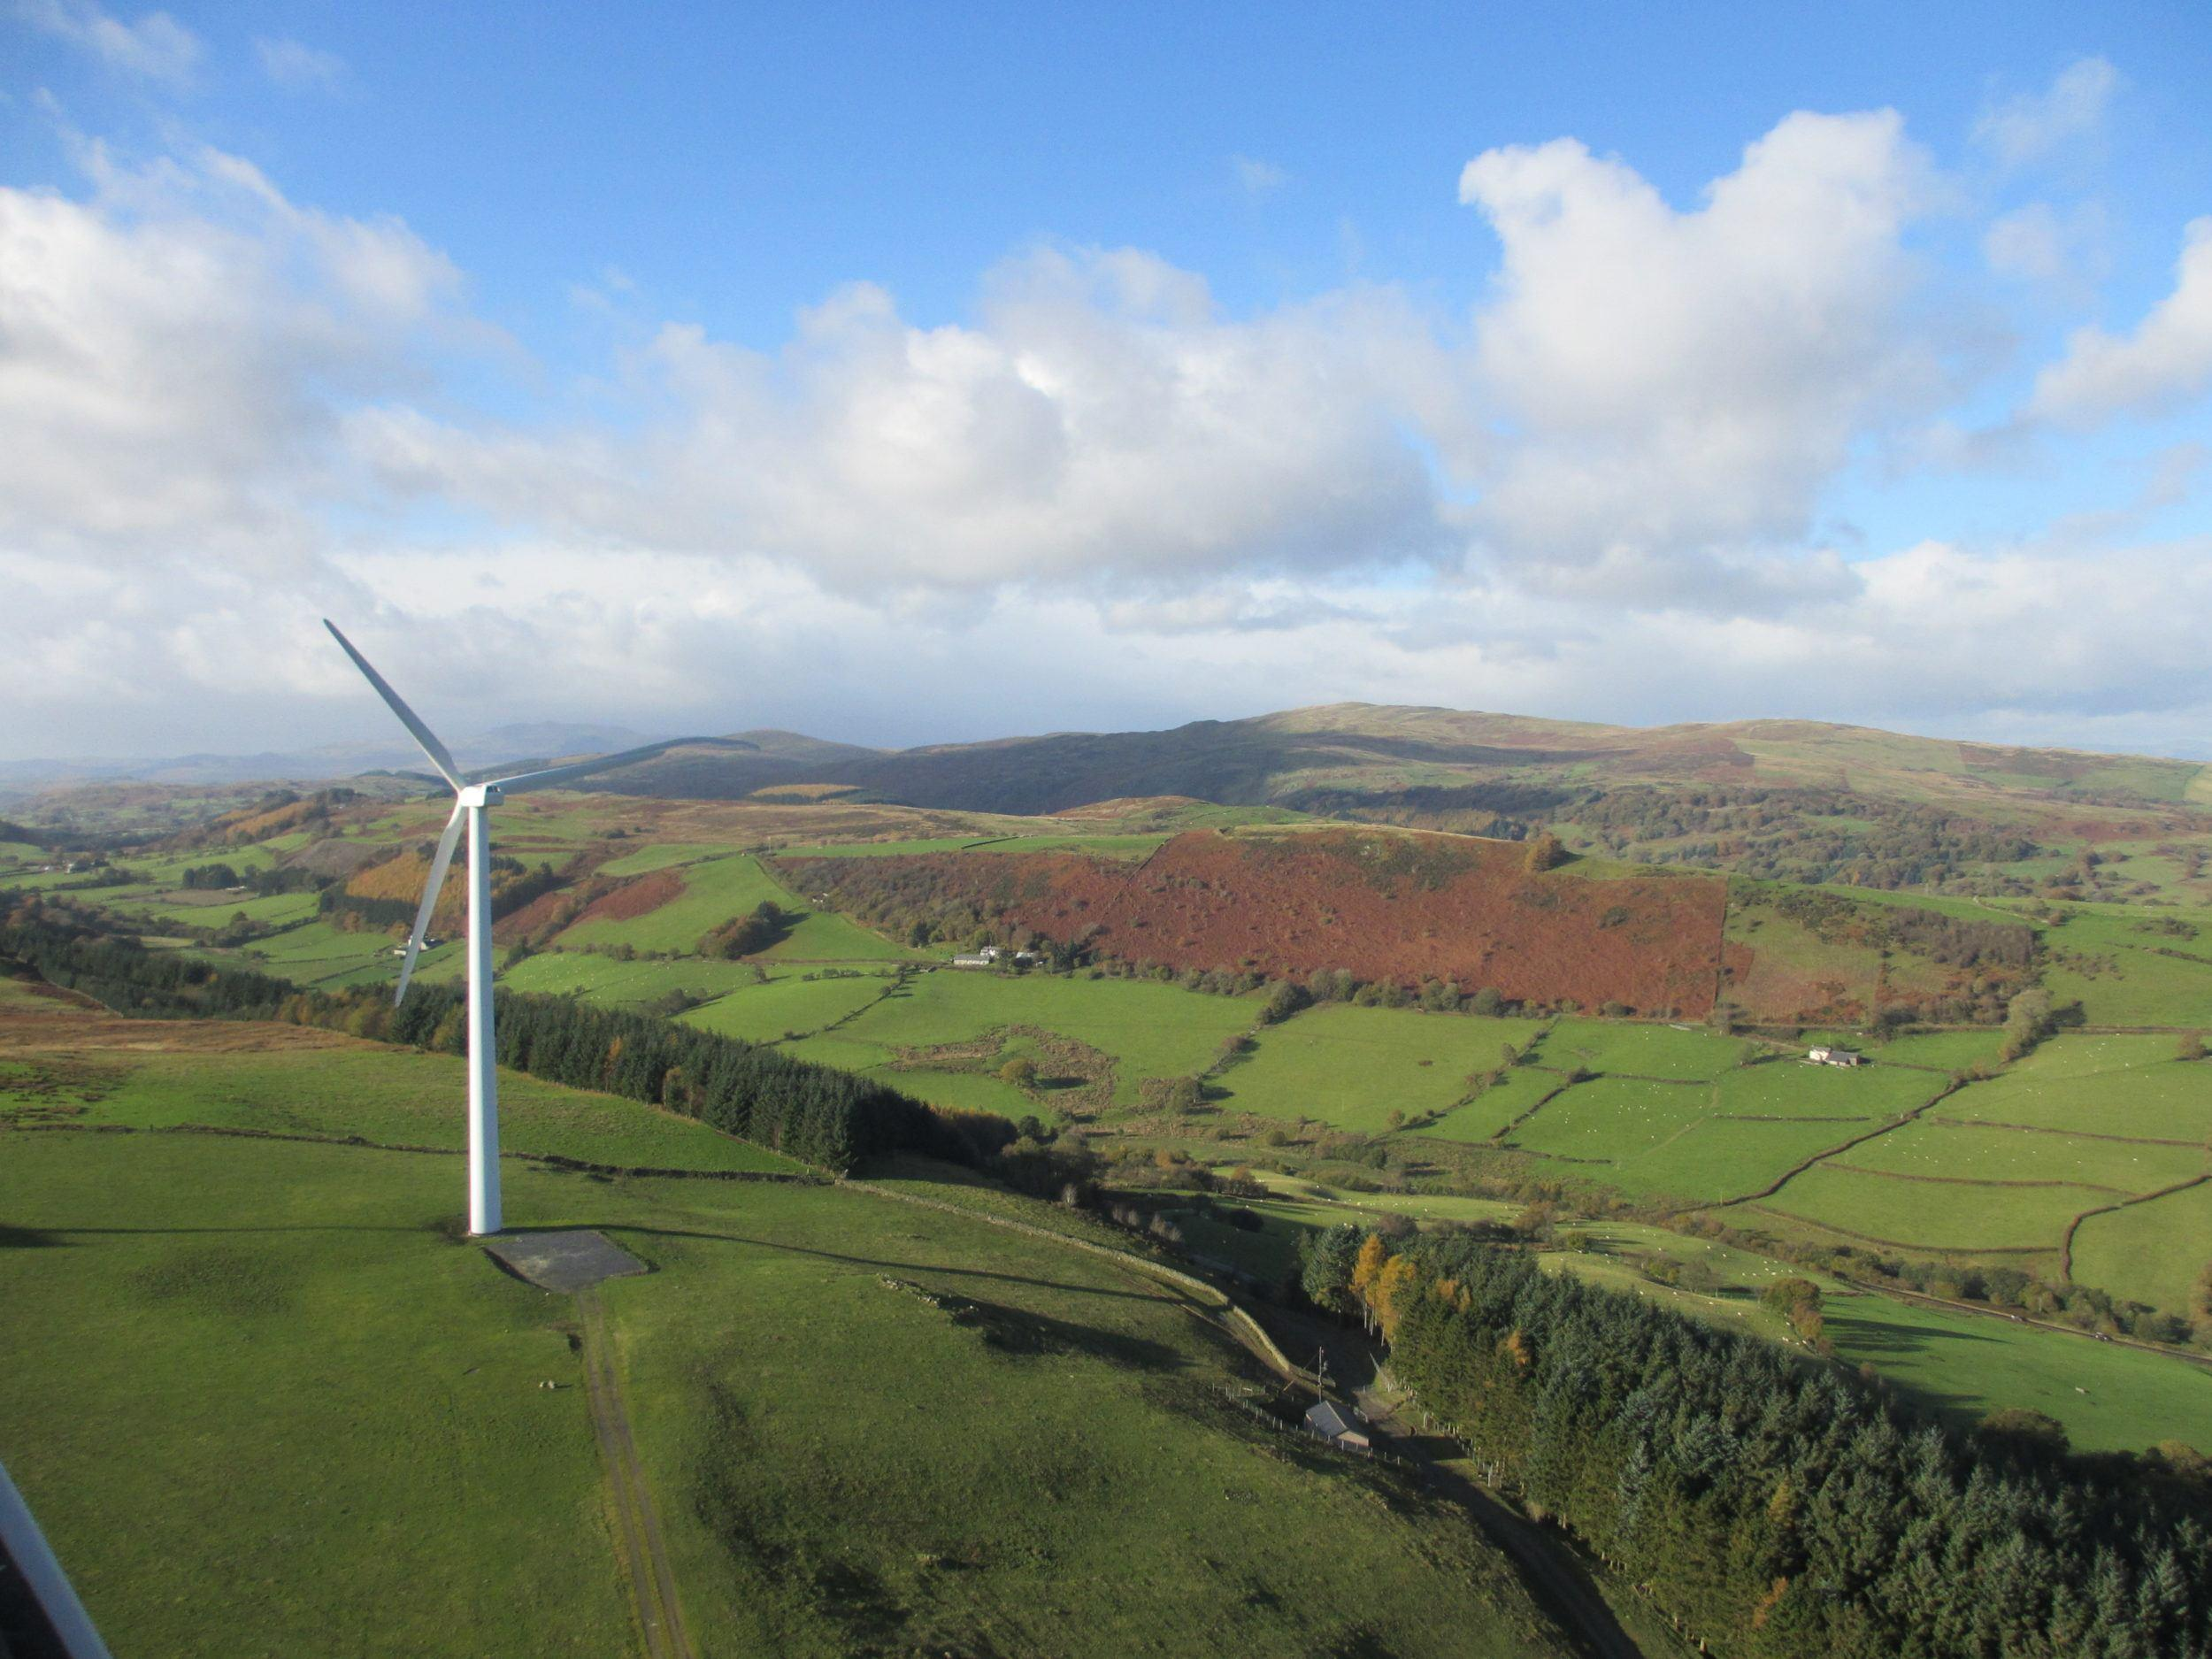 Wind turbine farm service agreement